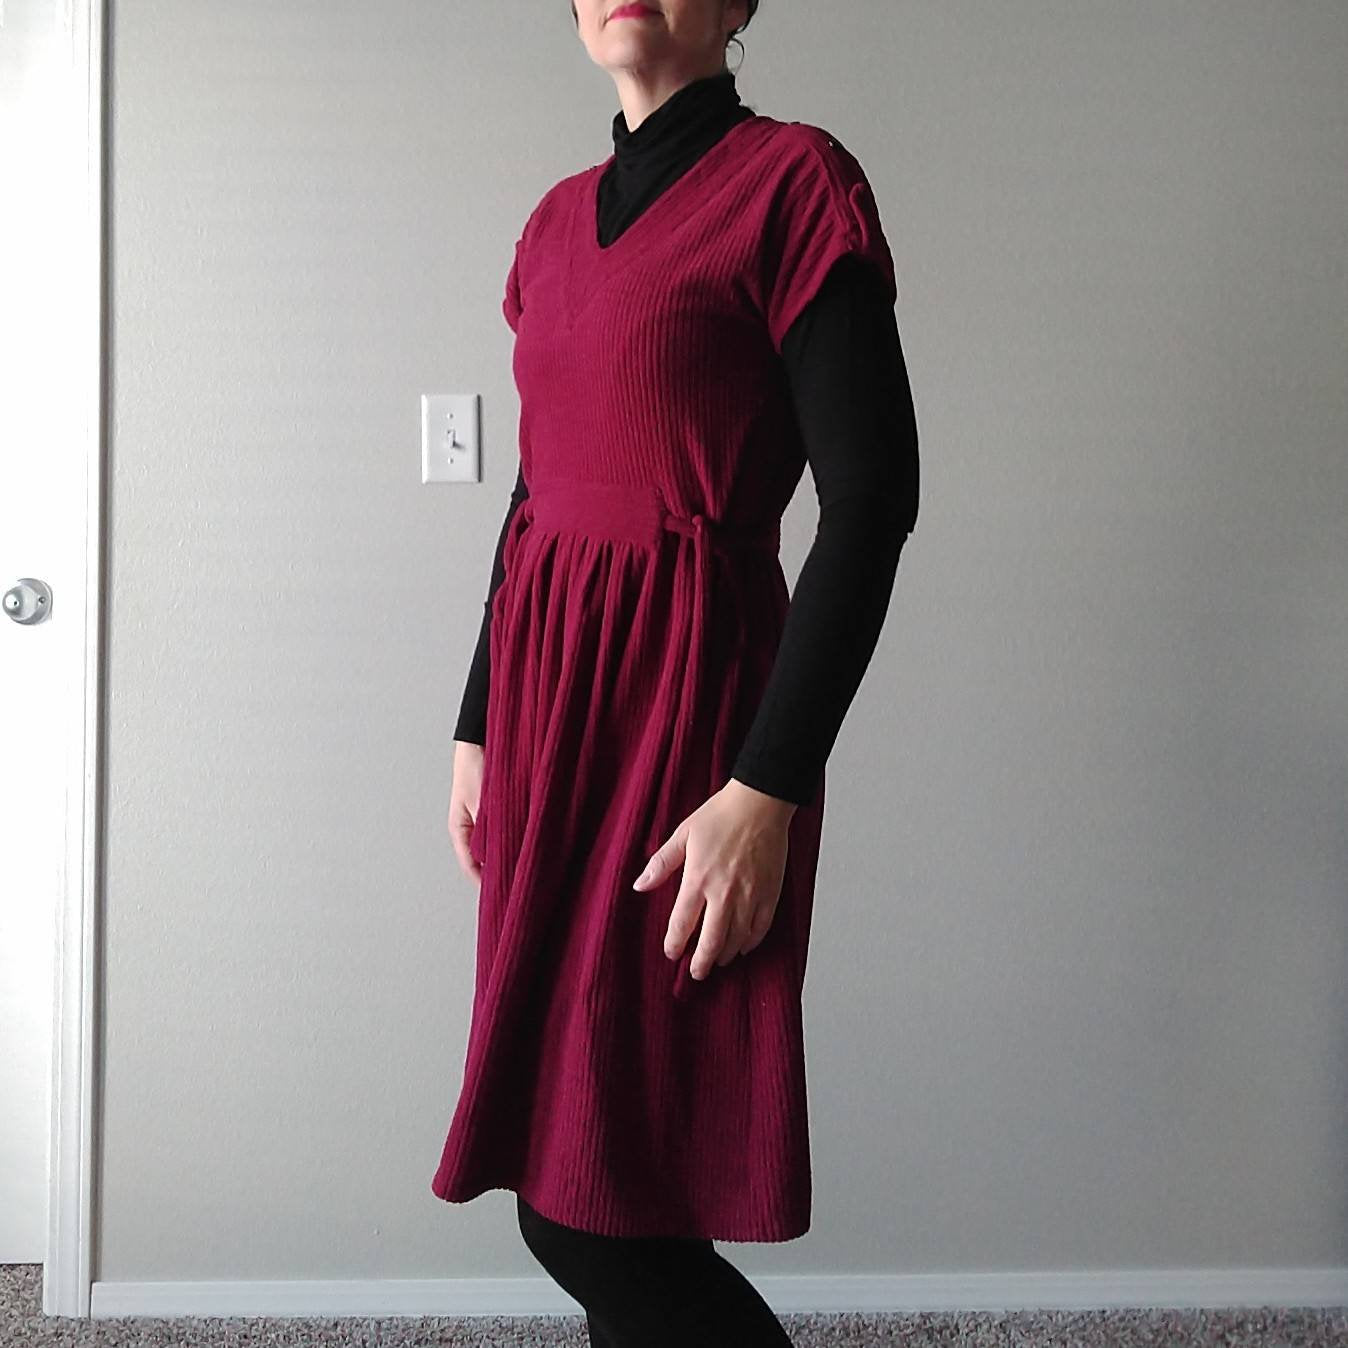 vintage BERRY VELOUR DRESS 1970's 1980's casual jumper S M (G6)